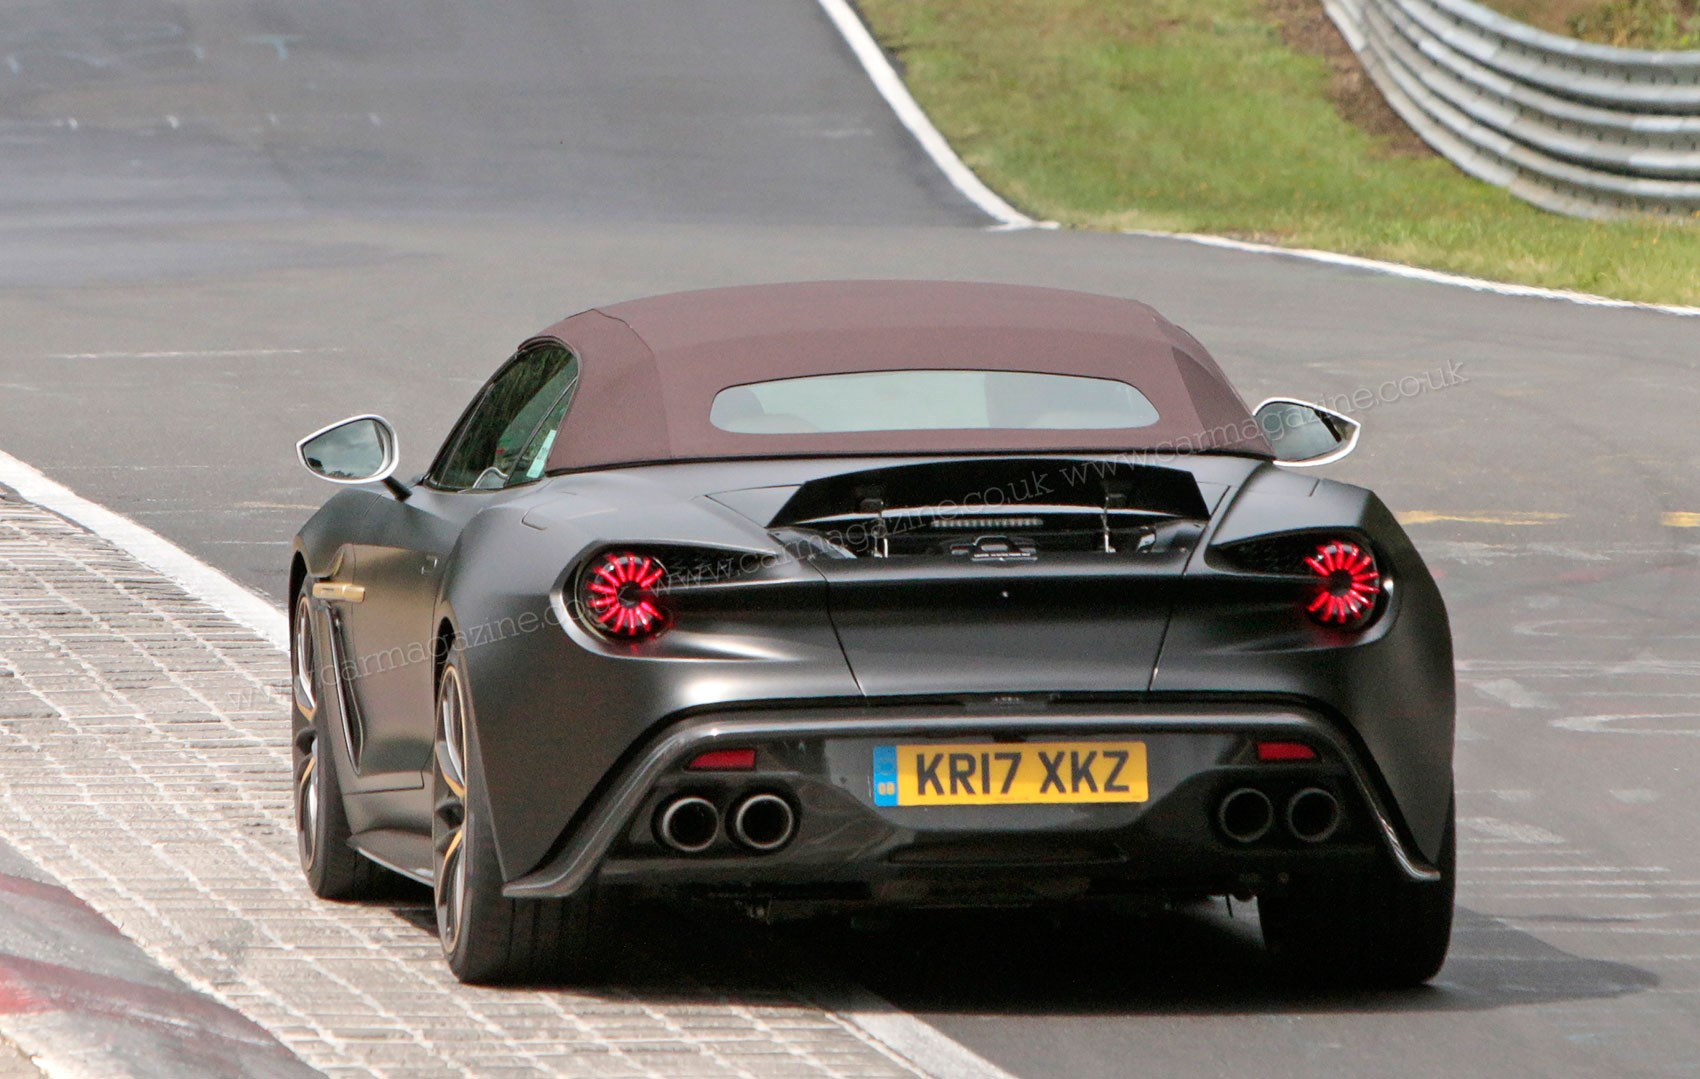 Aston Martin Vanquish Zagato Volante And Speedster Spy Photos